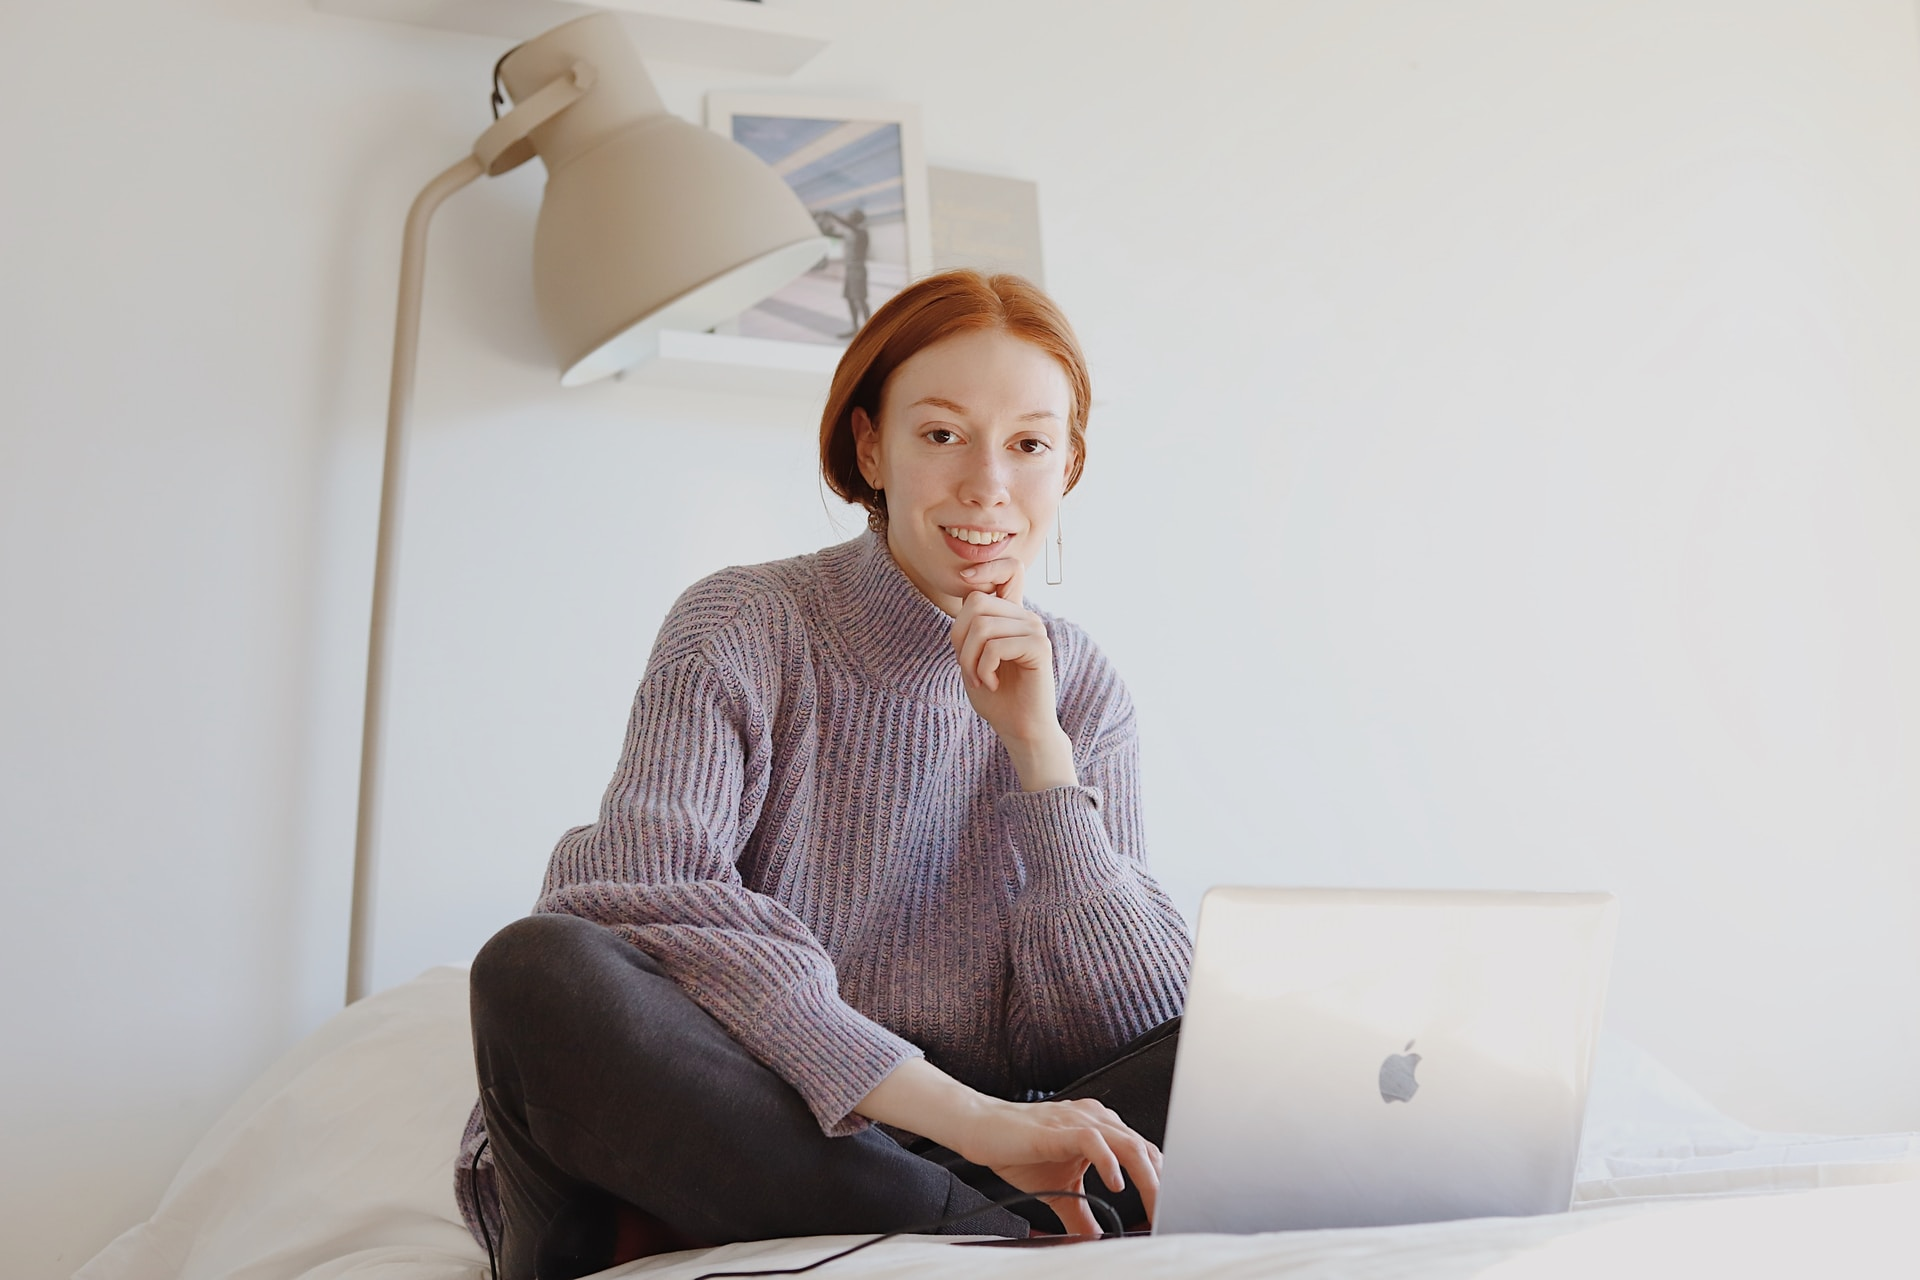 woman in gray sweater sitting on chair using macbook